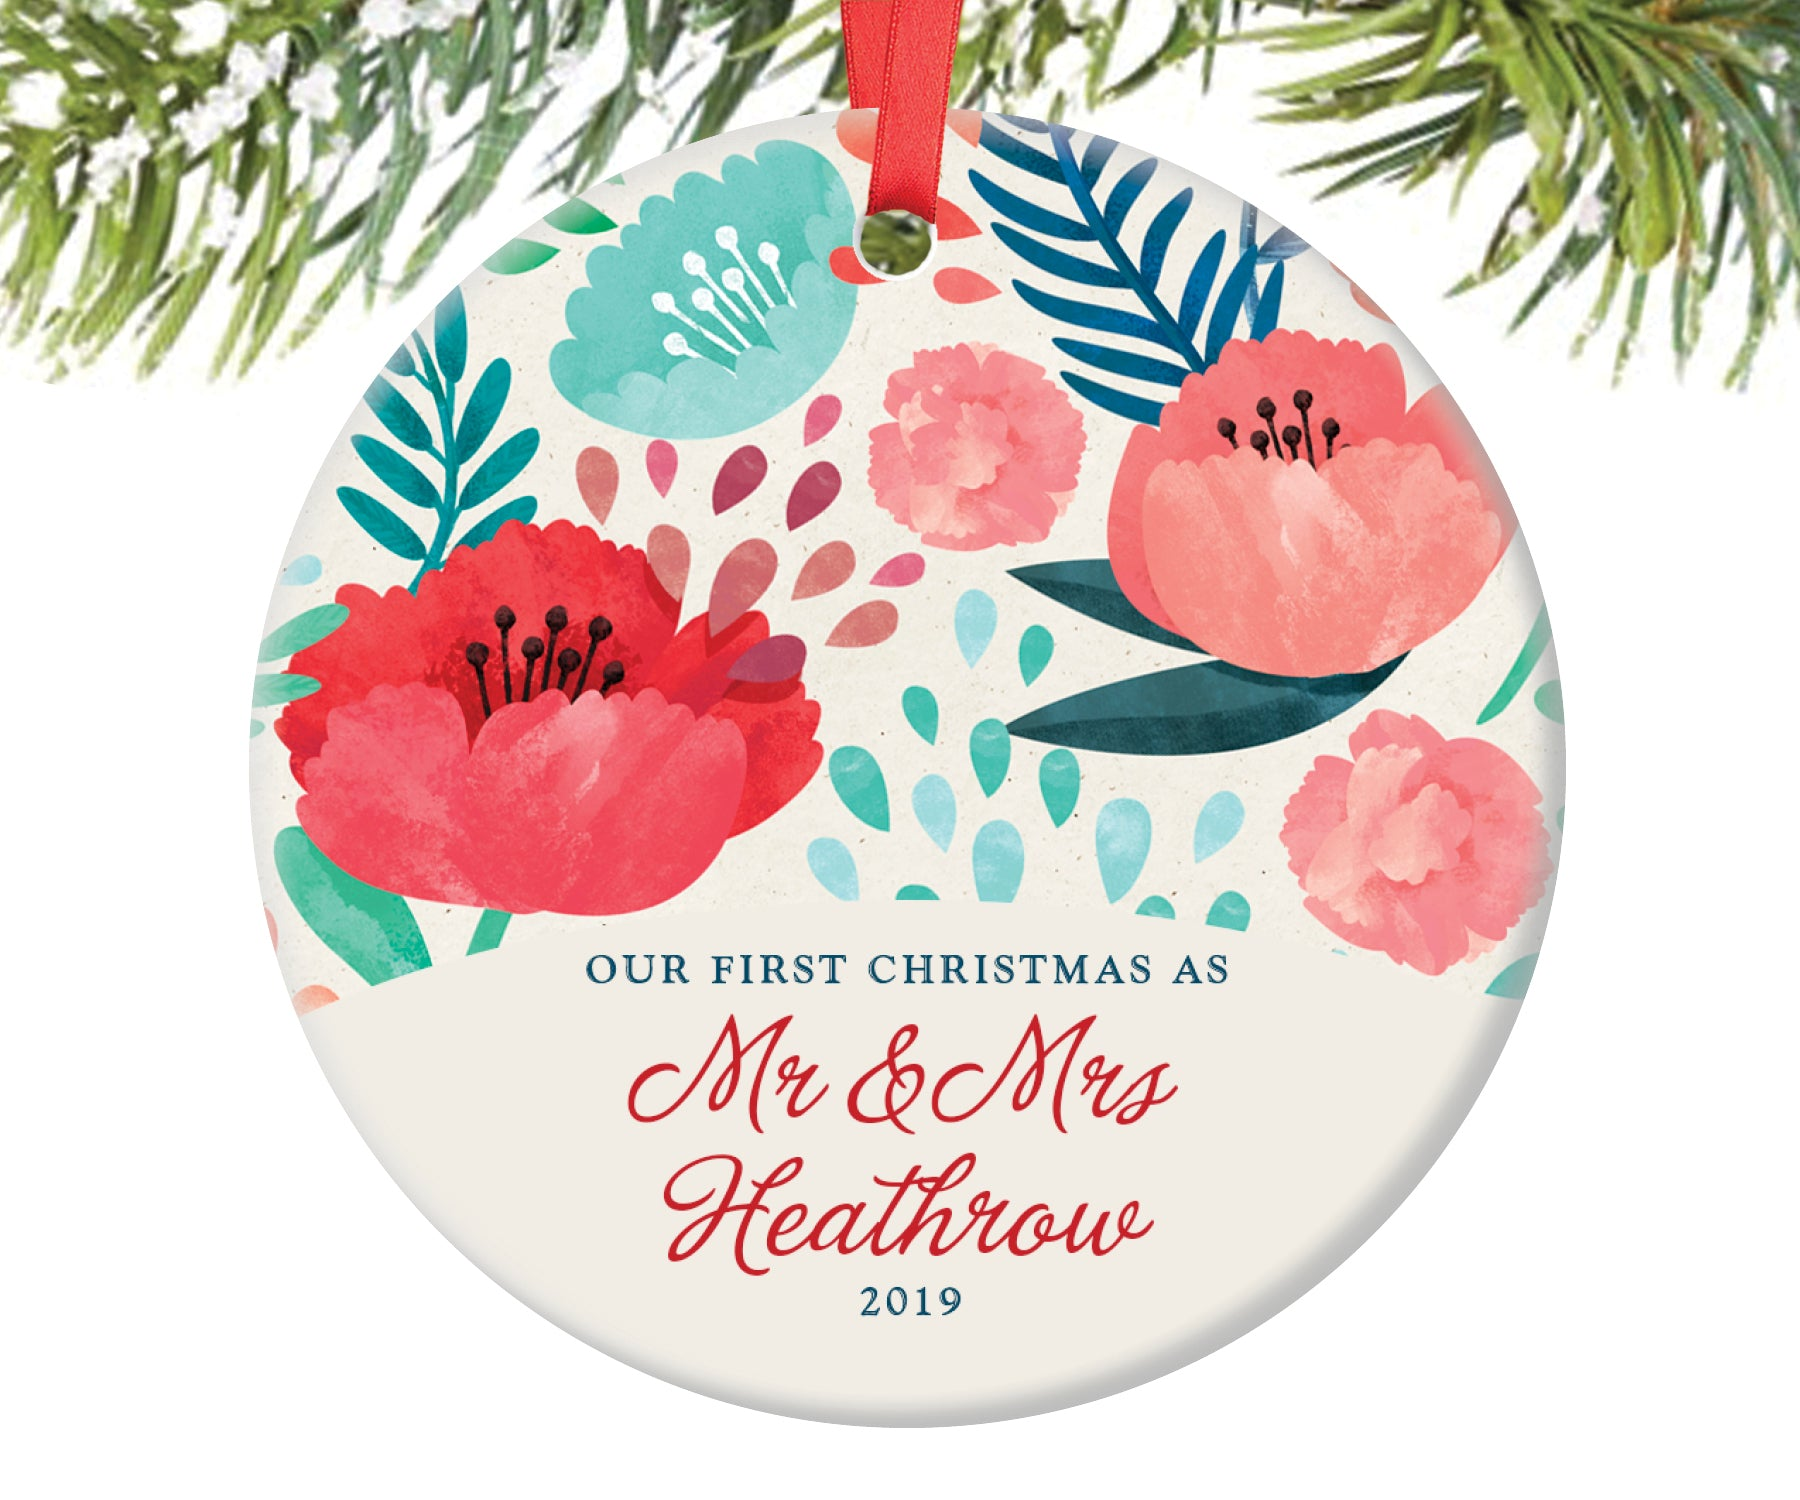 First Christmas as Mr and Mrs Ornament, Personalized | 154